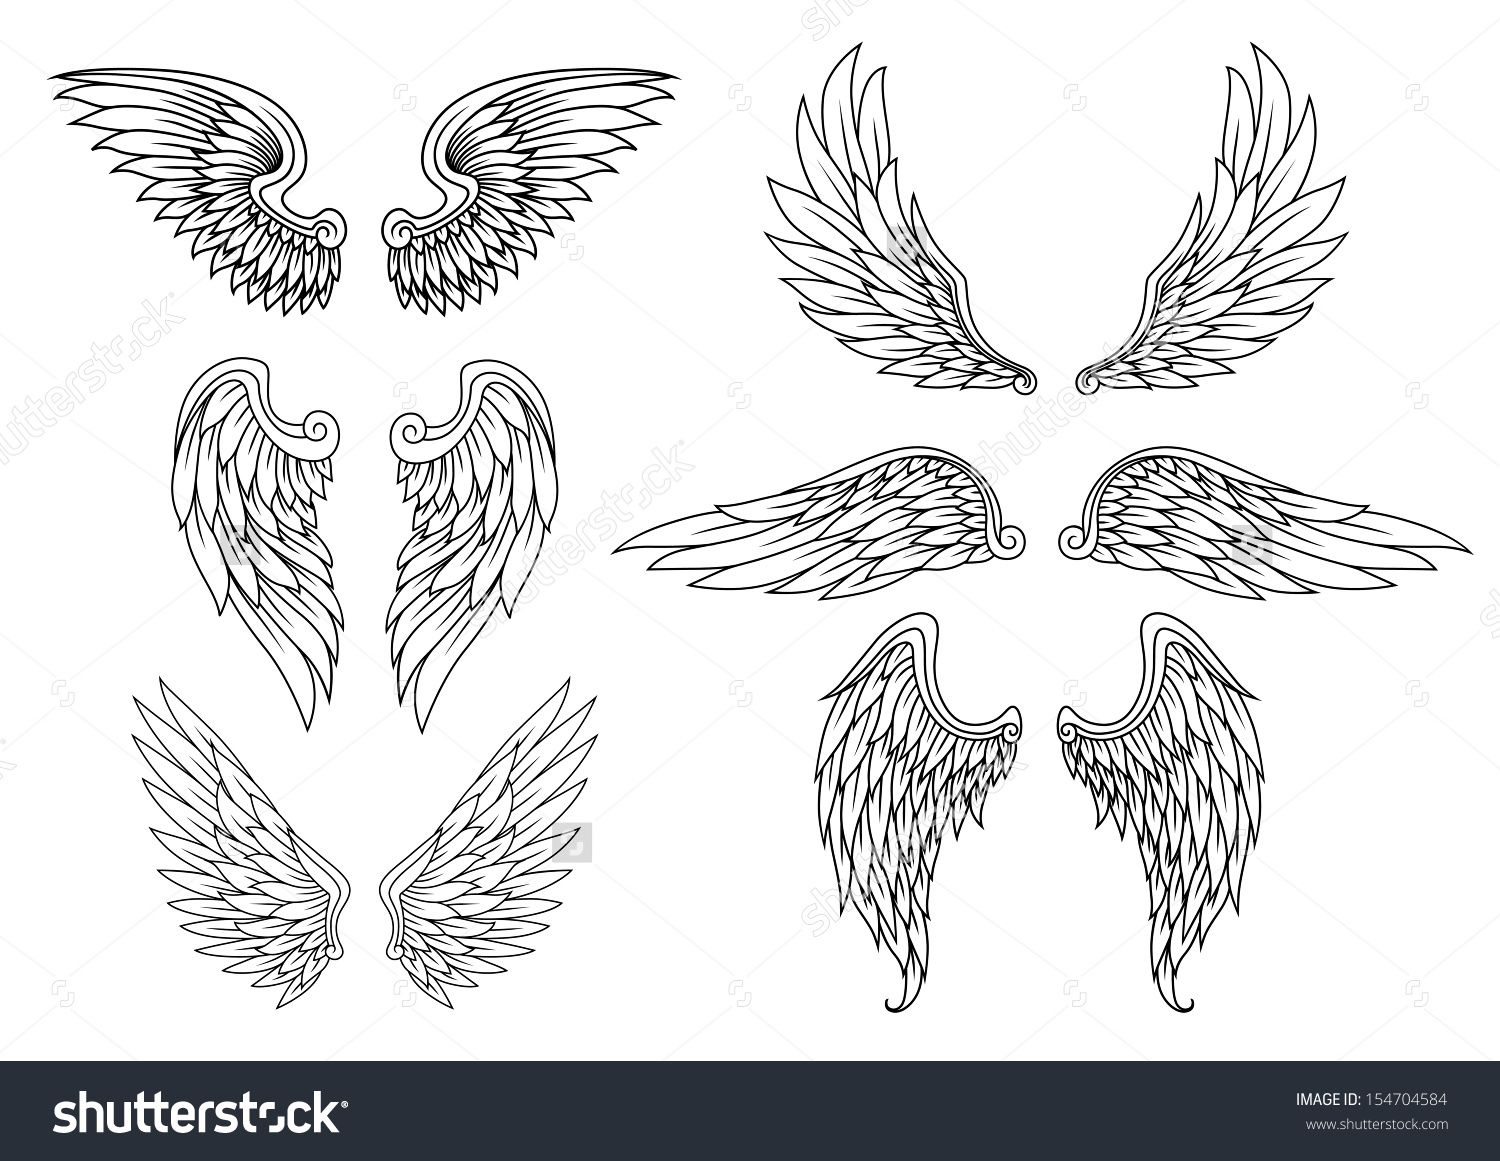 heraldic wings set for tattoo or mascot design jpeg version also available in gallery stock. Black Bedroom Furniture Sets. Home Design Ideas